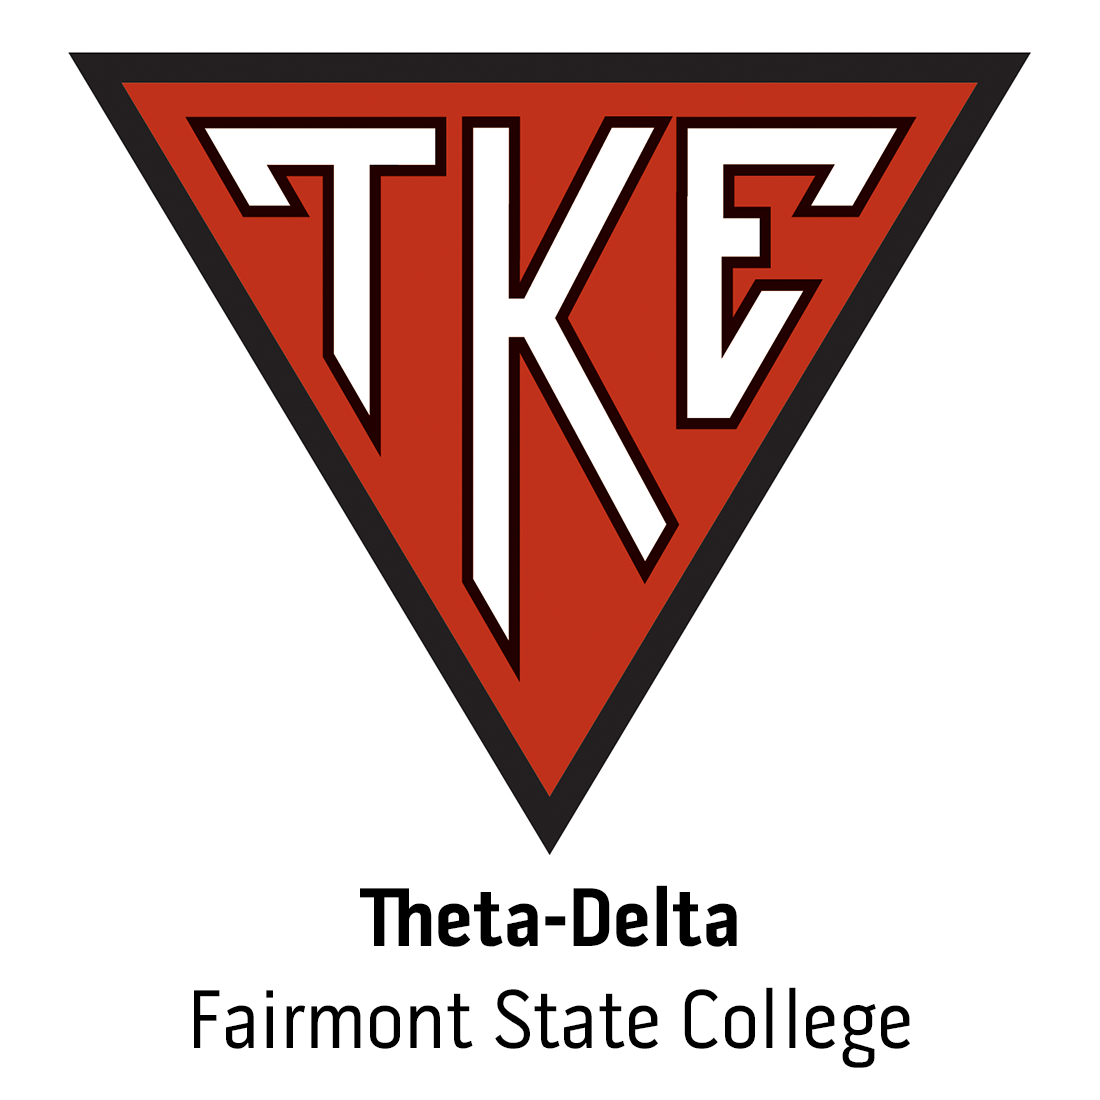 Theta-Delta Chapter at Fairmont State University